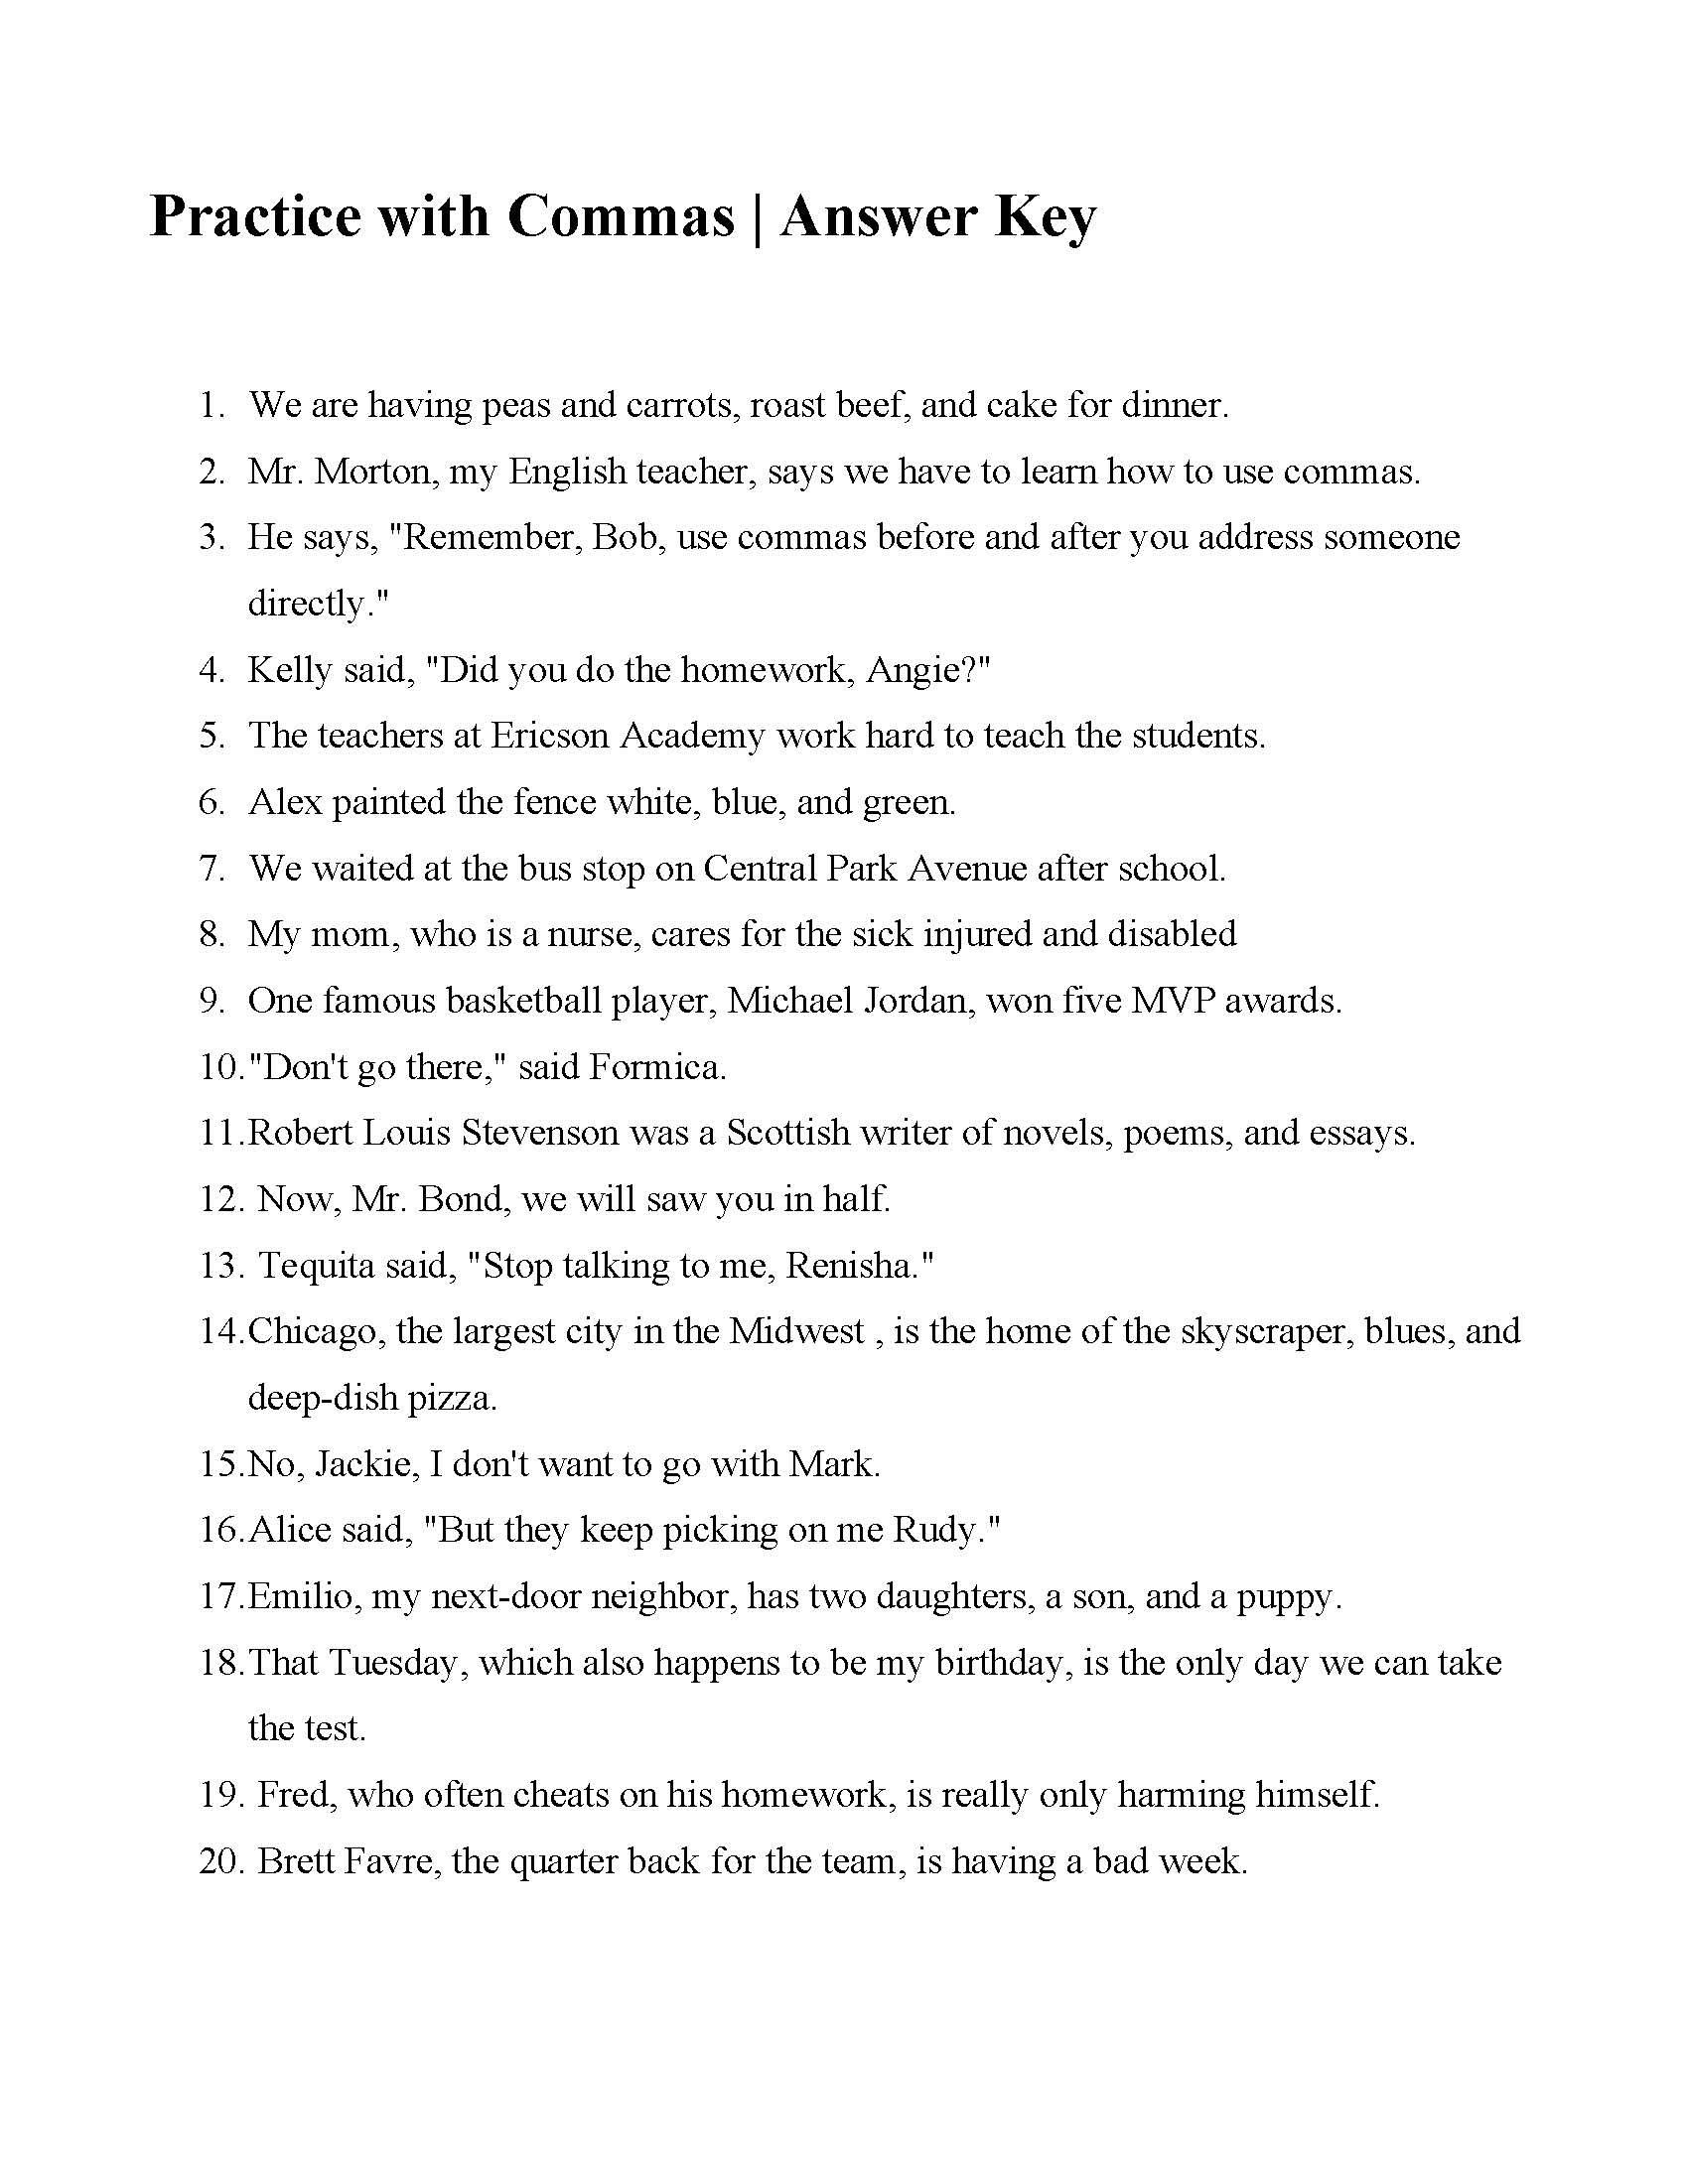 Comma Worksheets Middle School This is the Answer Key for the Practice with Mas